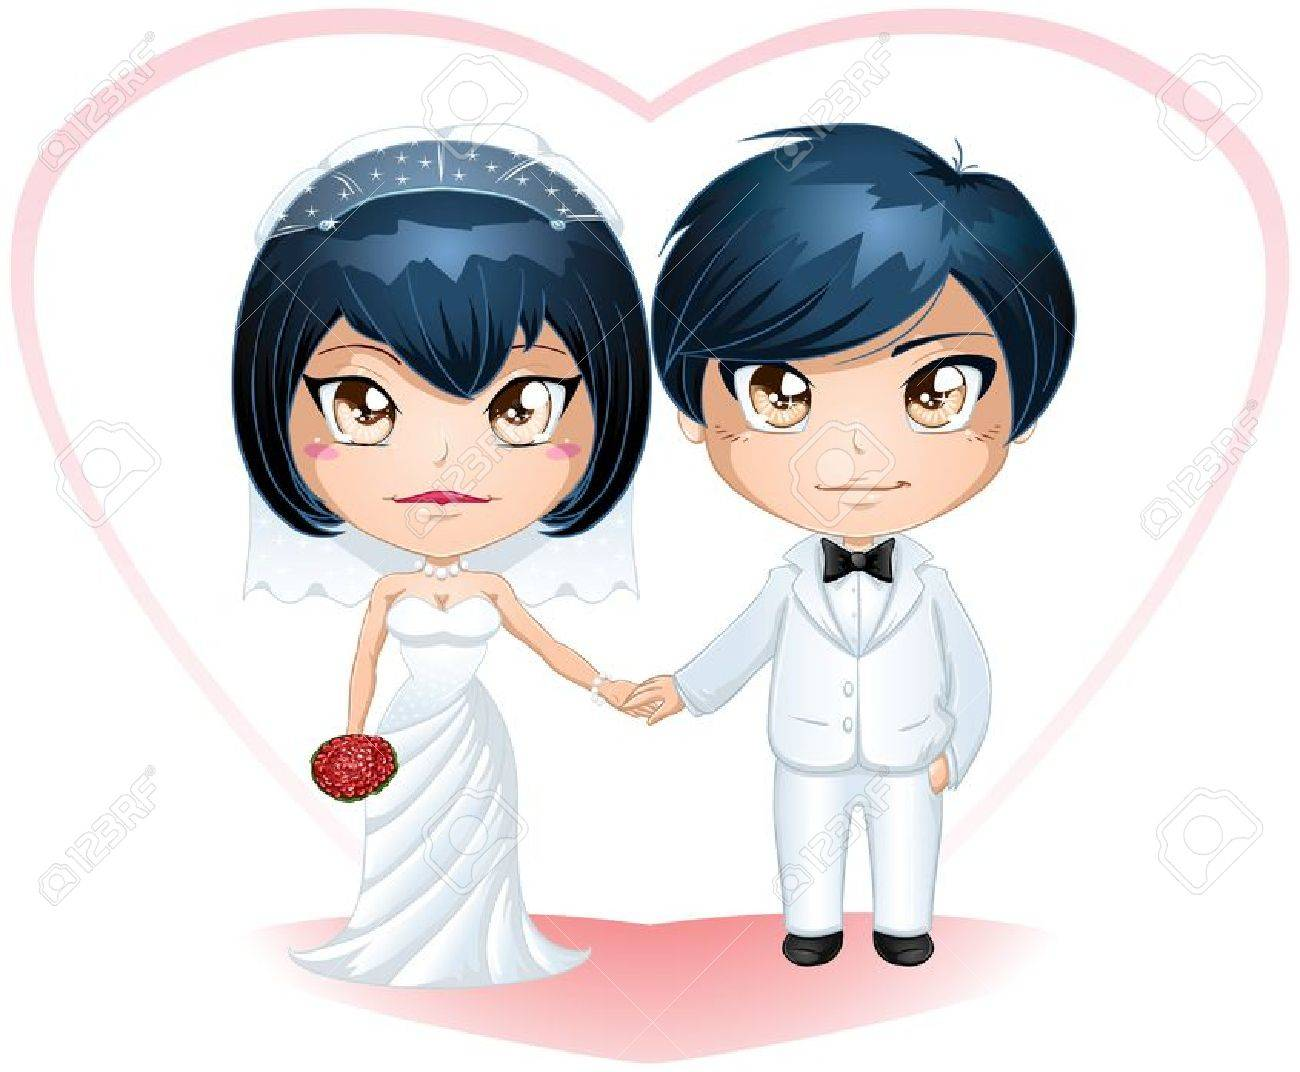 A vector illustration of a bride and groom dressed for their wedding day. - 17560357